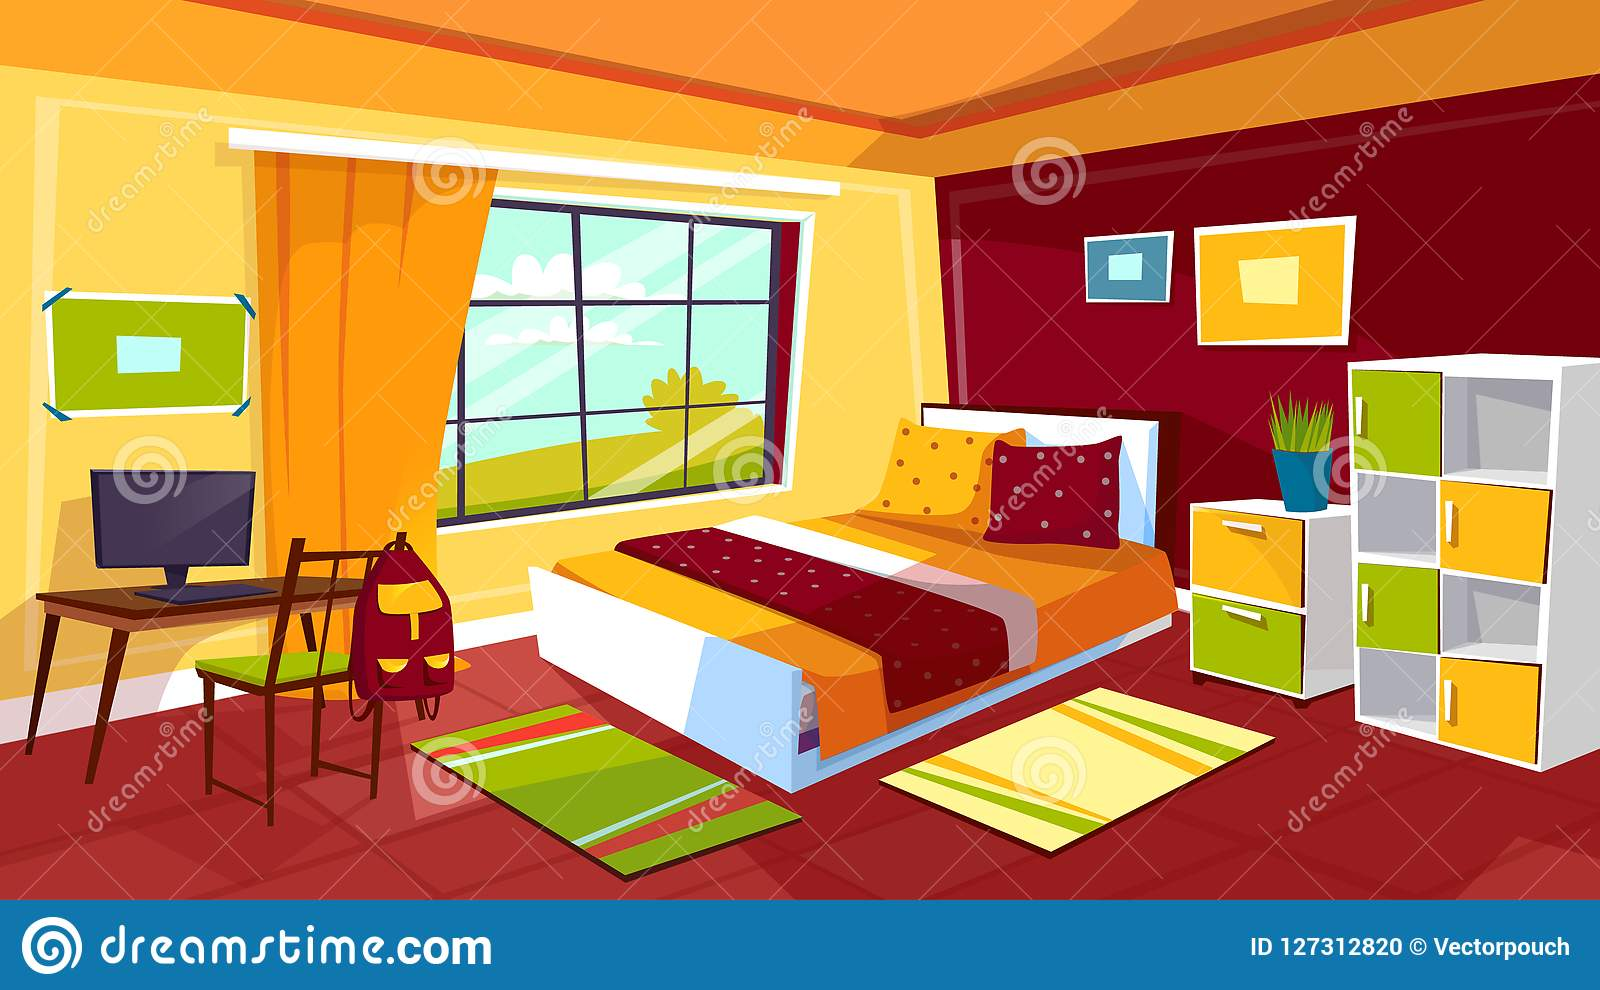 Teen Room Chair Teenager Bedroom Cartoon Illustration Of Teen Girl Or Boy Room